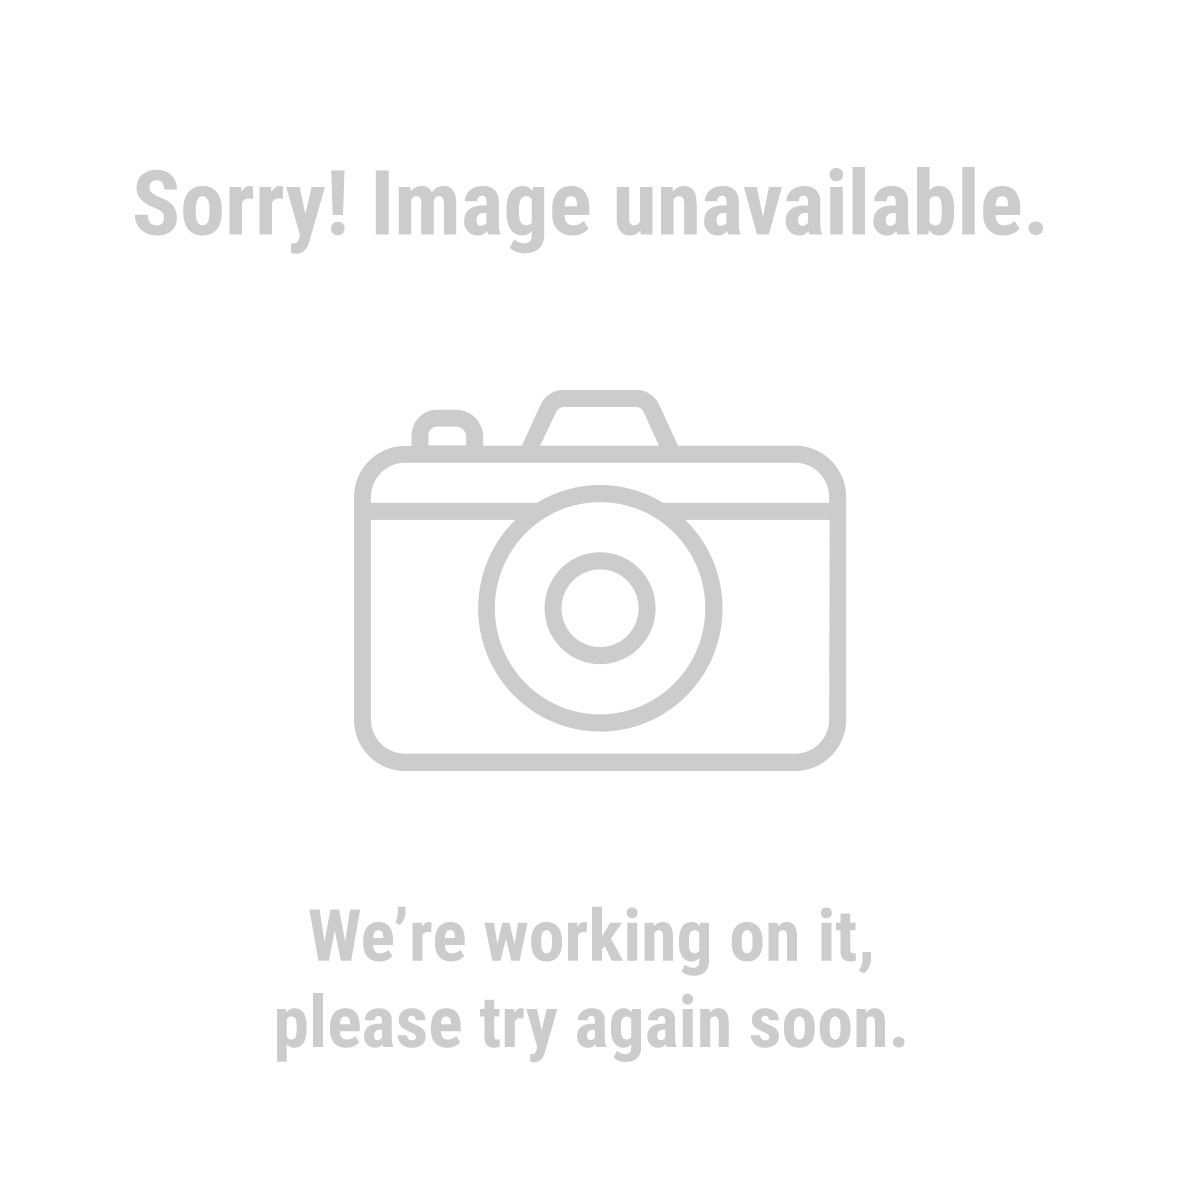 HARDY 99580 Riding/Stable Work Gloves, Small